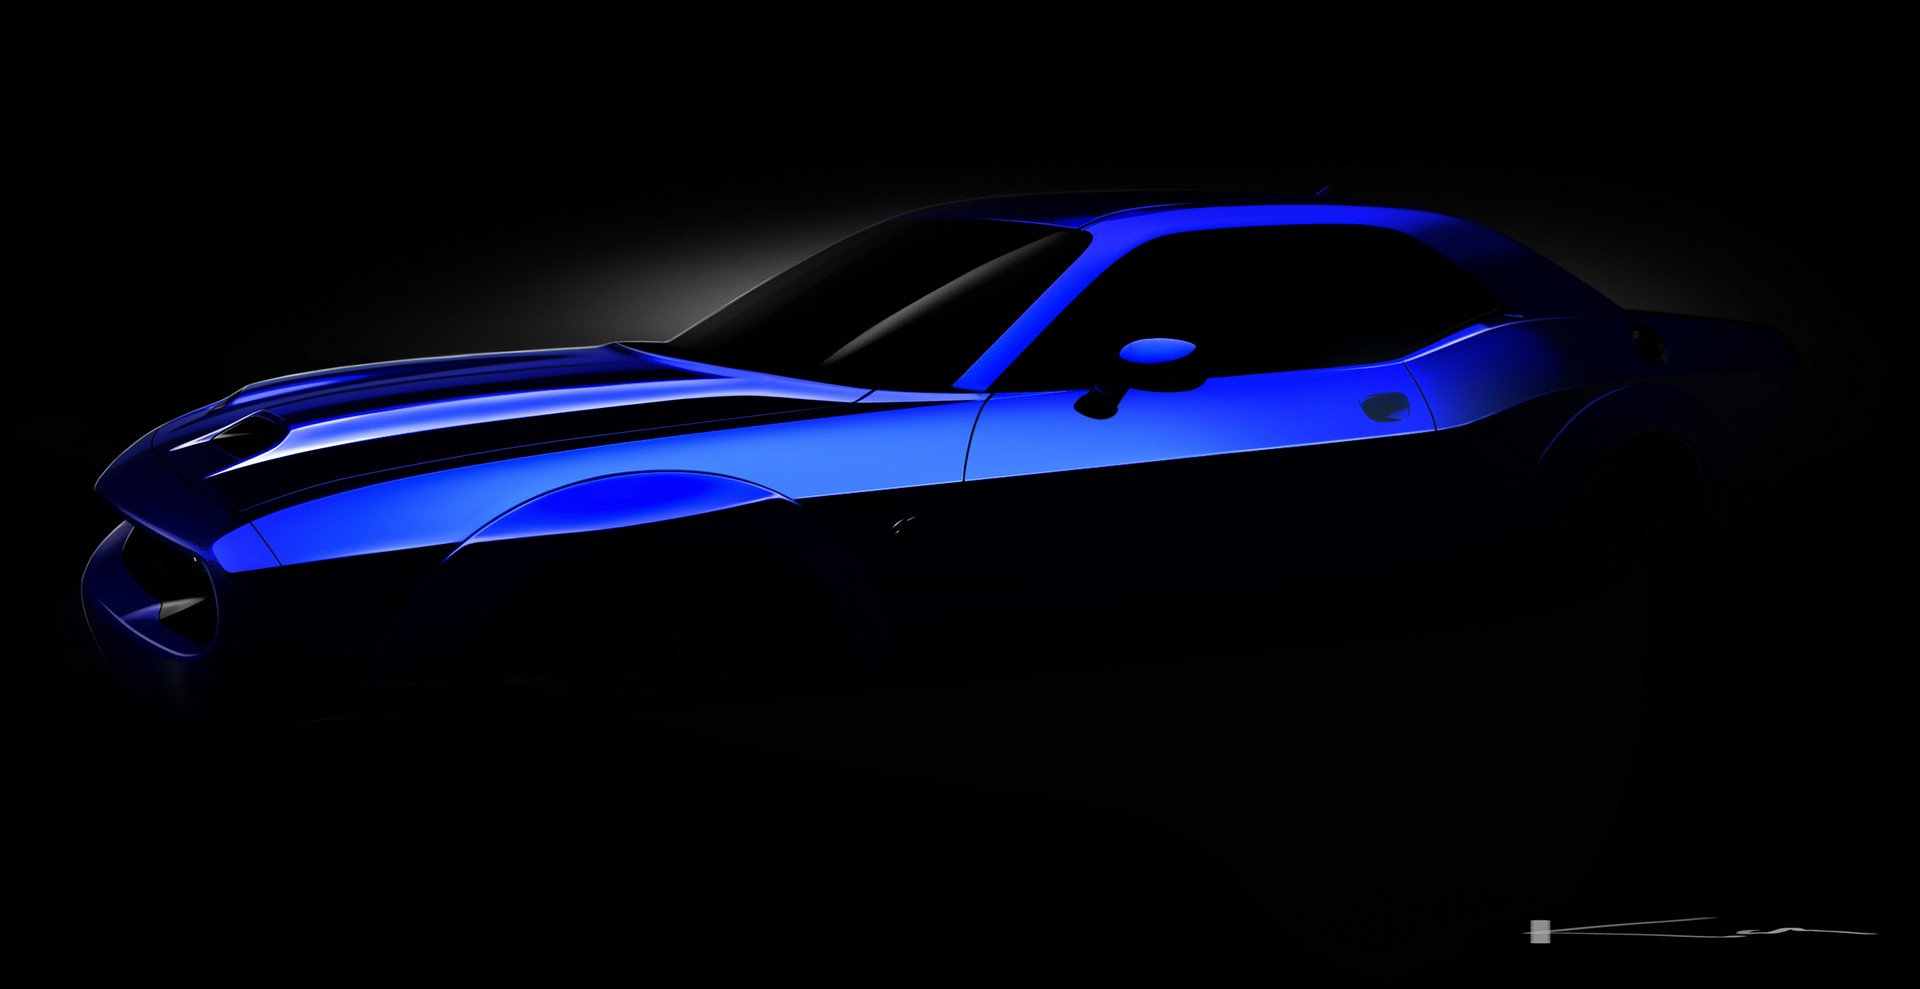 2019 Dodge Challenger SRT Hellcat: No Rest for the WickedDodge is again reaching back to its 100+ year history as it evolves the Challenger lineup for 2019 – introducing a new dual-snorkel hood that pays homage to the distinctive Mopar design themes from some of its most famous muscle cars. This new fully functional hood harkens back to the mid-sixties and early-seventies but with a modern interpretation that looks even more sinister and provides maximum air intake to the supercharged powerplant. More information to come this summer…